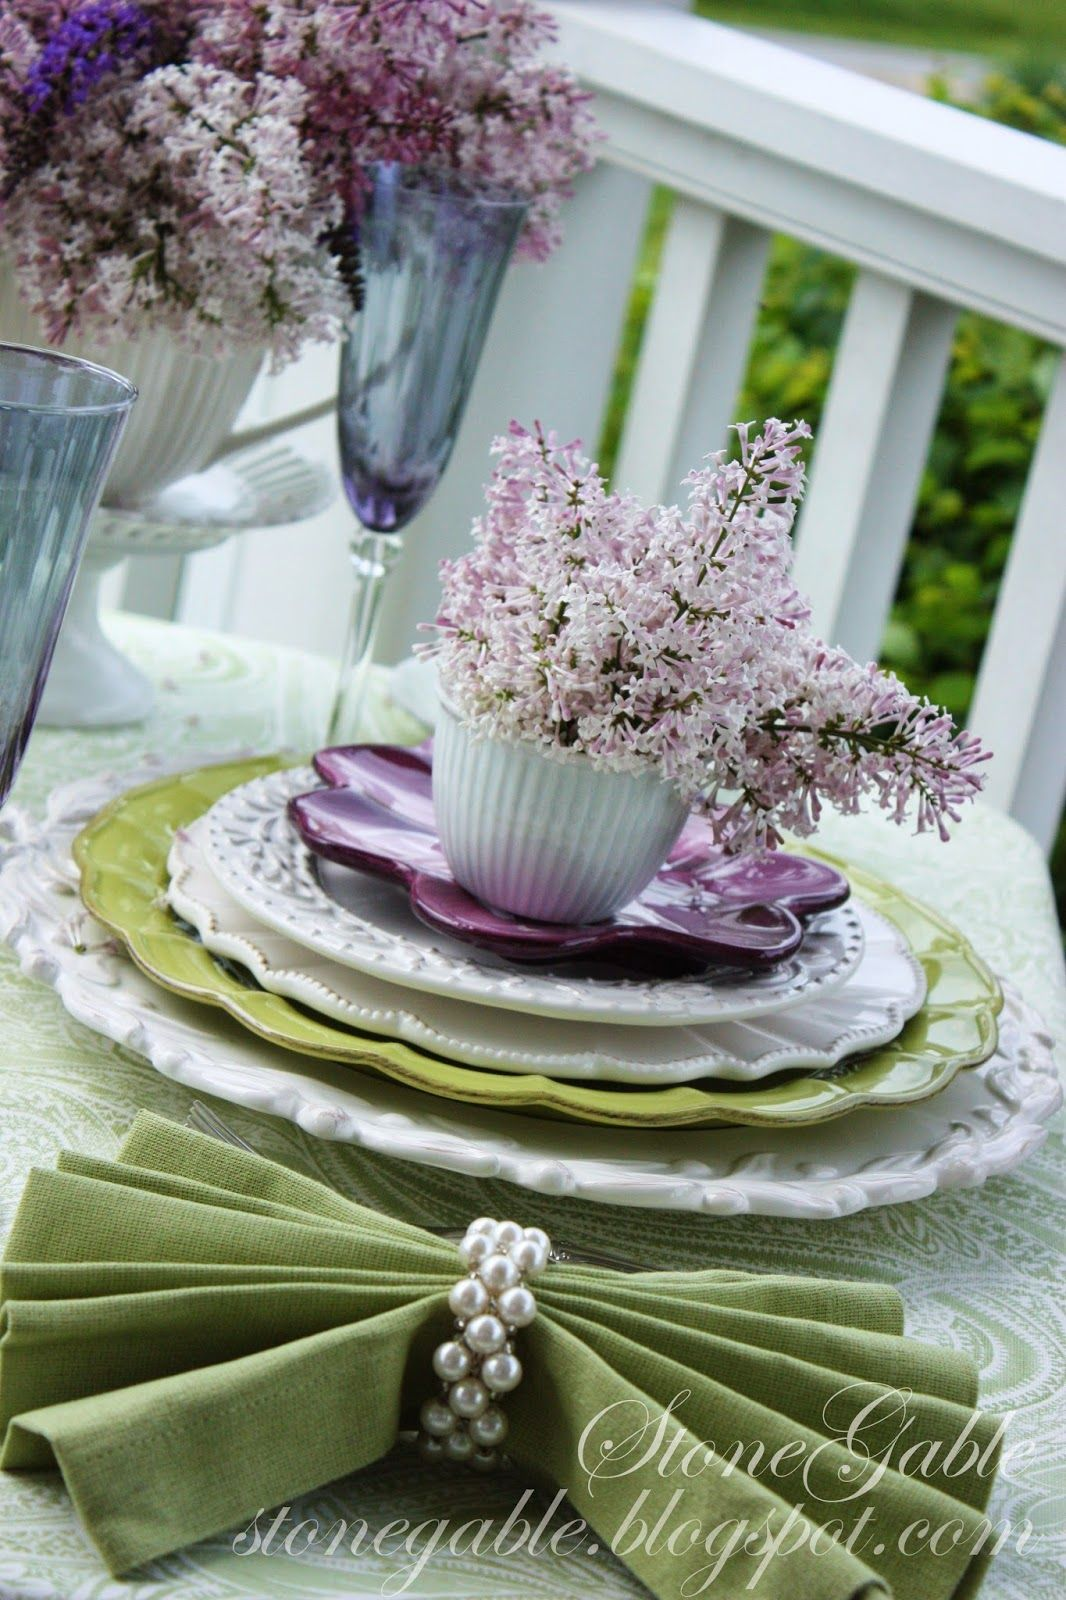 5 INTERESTING WAYS TO USE NAPKINS AND NAPKIN RINGS... A TABLESCAPE SERIES,  PART III   StoneGable Photo